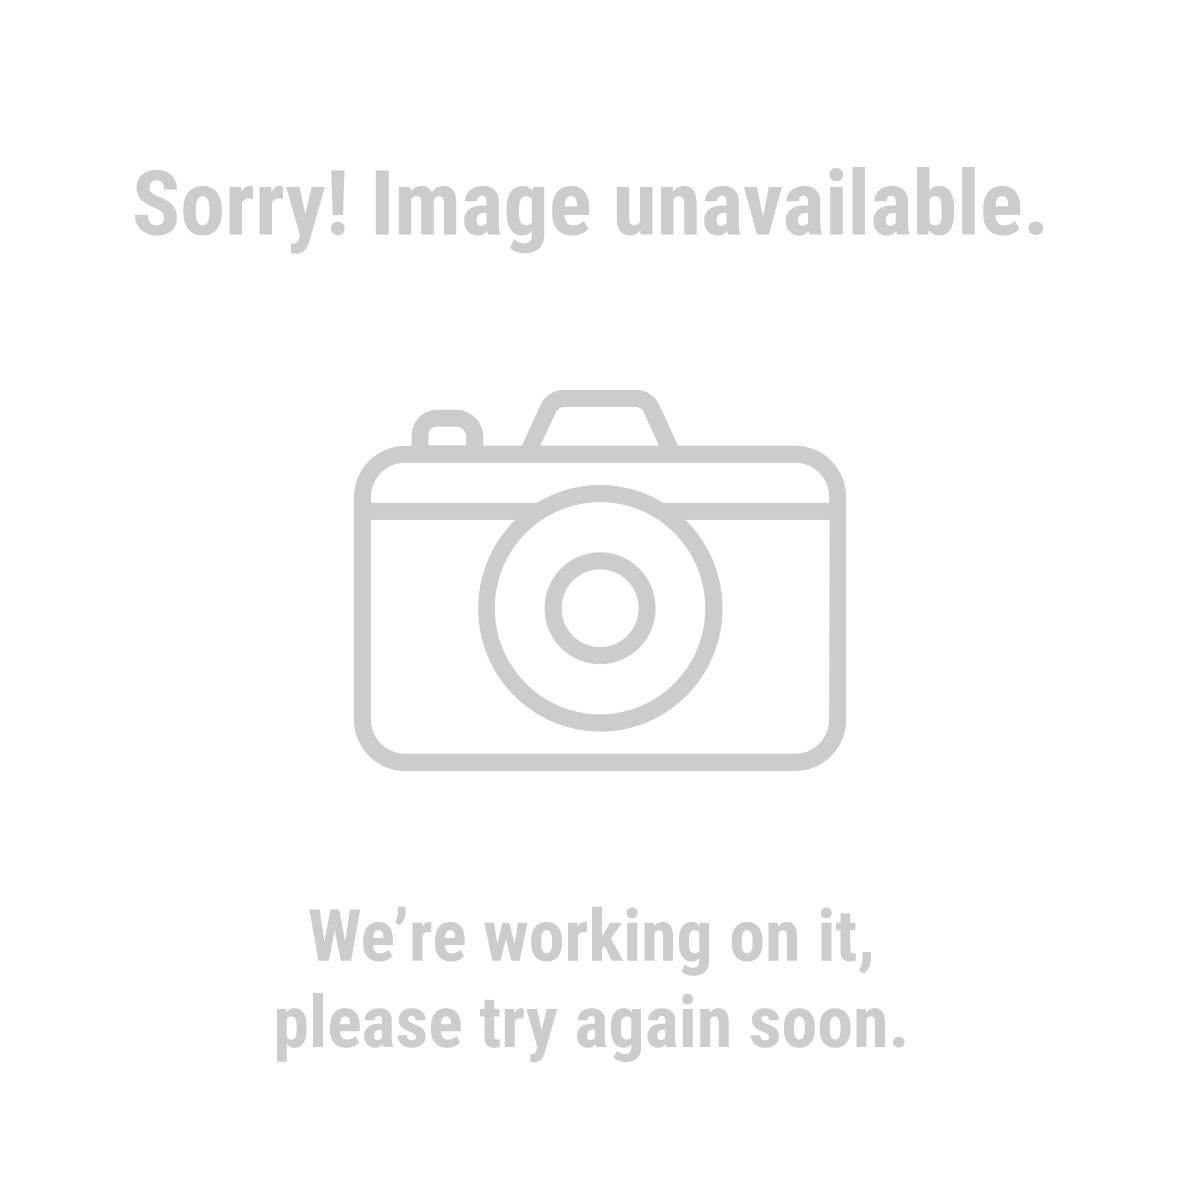 Pittsburgh® 62462 33 ft. x 1 in. QuikFind Tape Measure